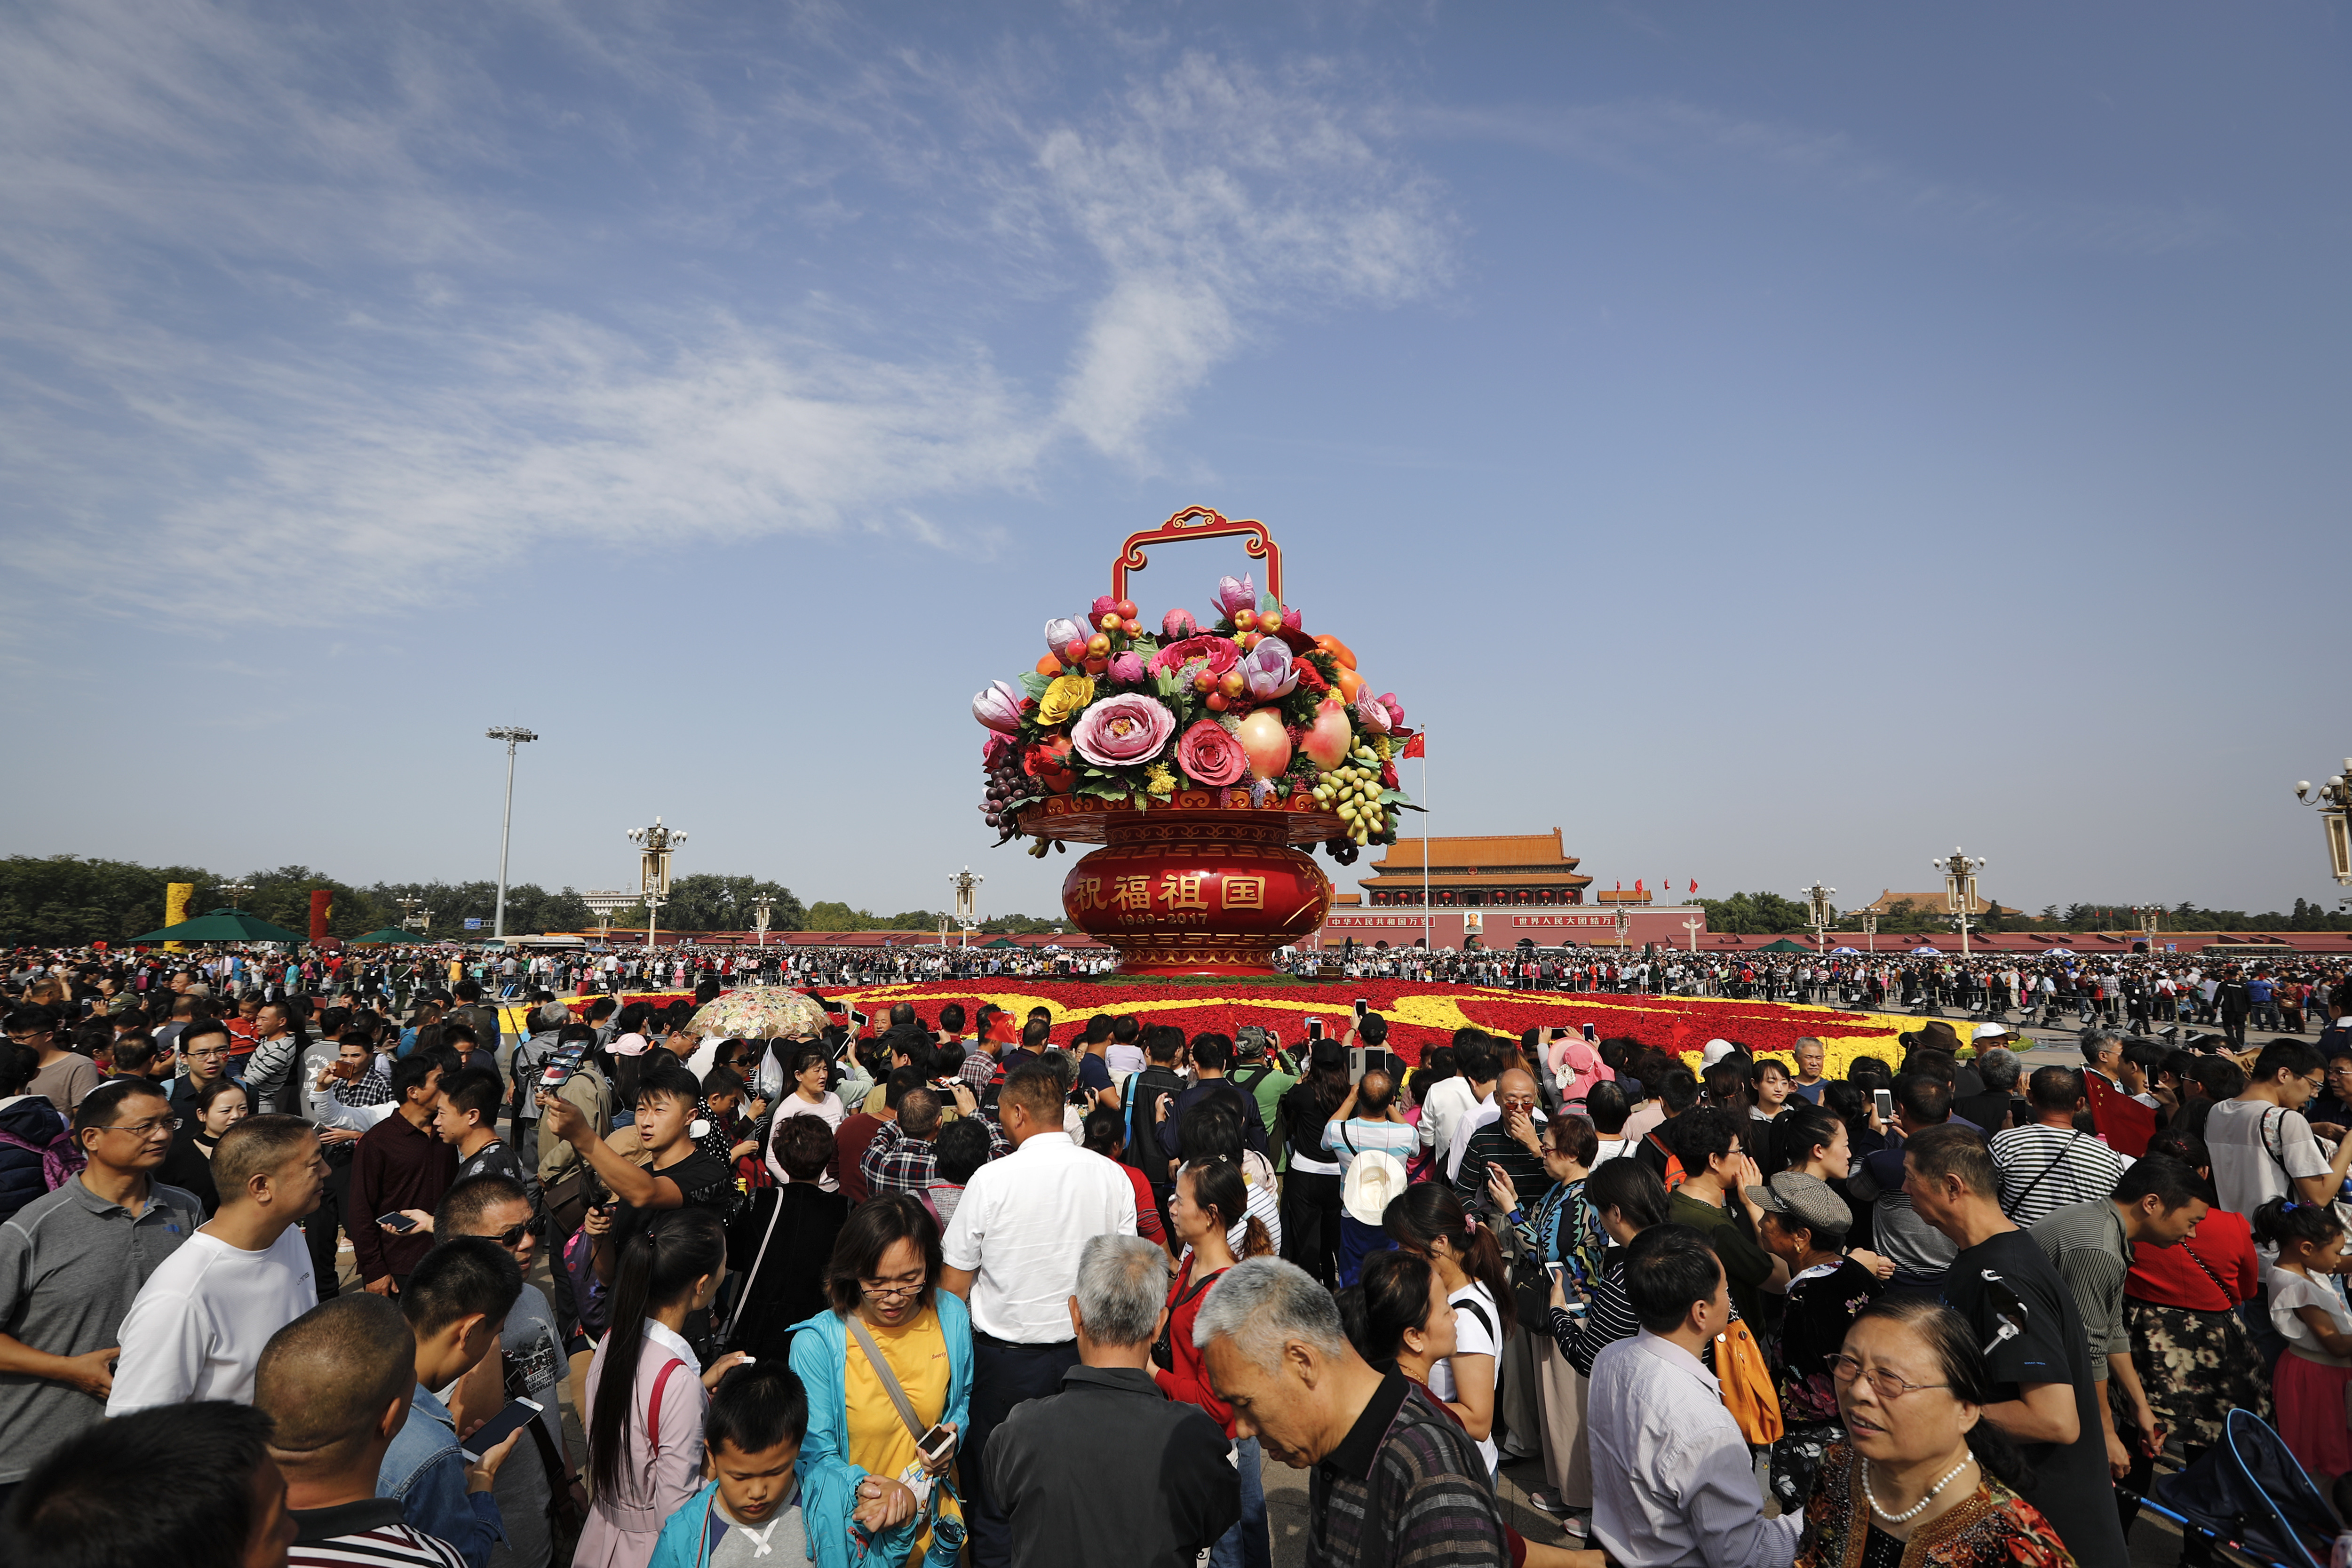 Visitors gather near a giant basket decorated with replicas of flowers and fruits on display at Tiananmen Square on China's National Day in Beijing, Sunday, Oct. 1, 2017. Hundreds of thousands foreign and domestic tourists flock to the square to celebrate the 68th National Day and the Mid-Autumn Festival over the week-long holidays.